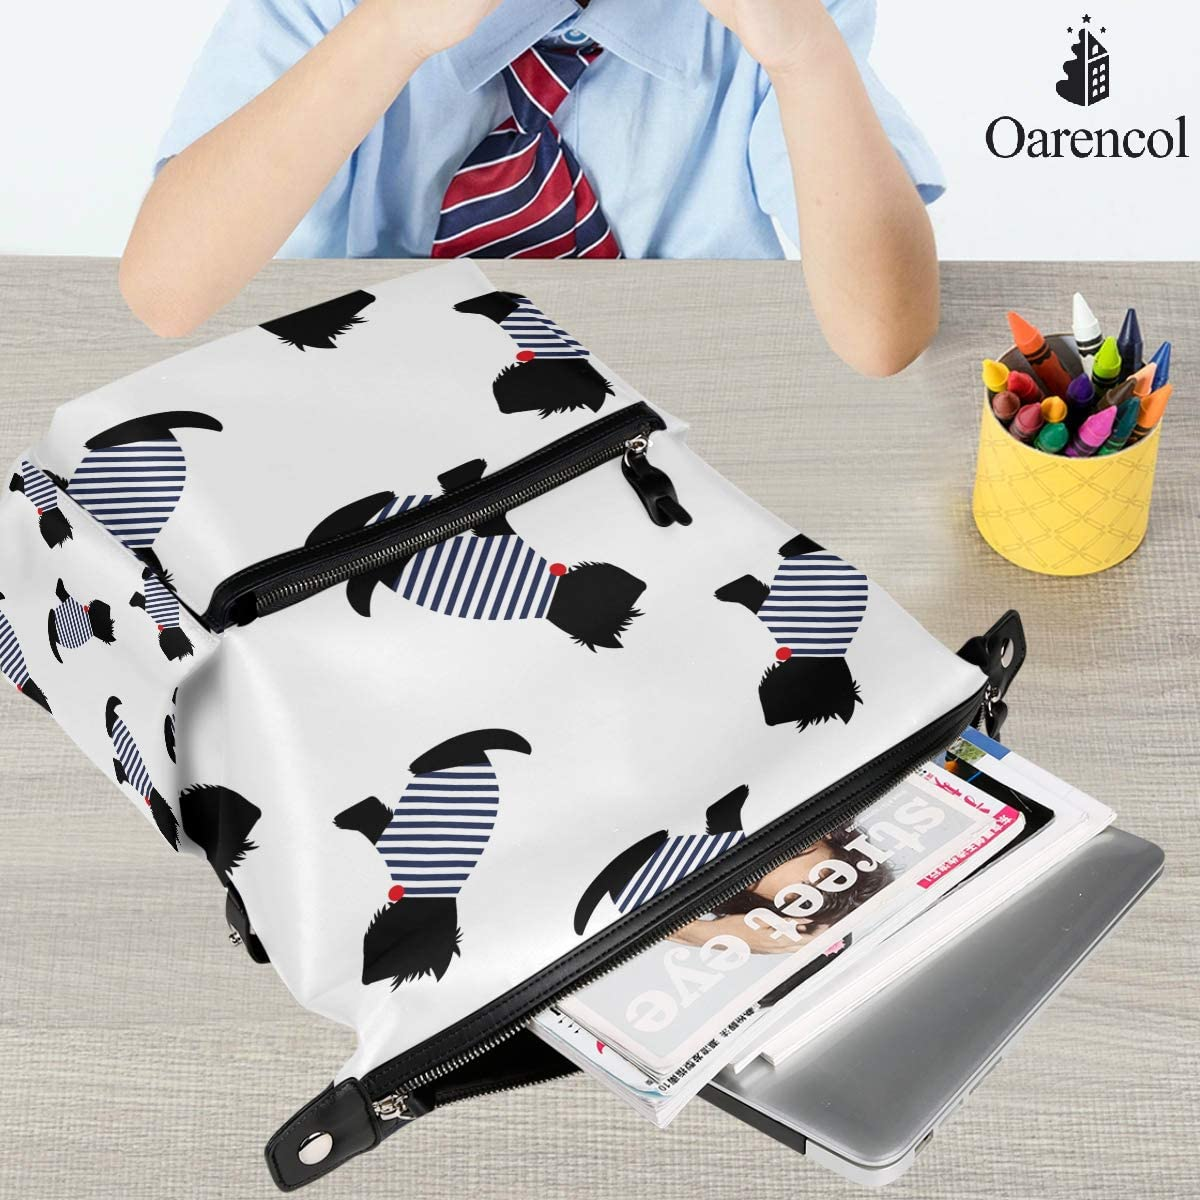 White Oarencol French Style Schnauzer Dog Animal Backpack School Book Bag Travel Hiking Camping Laptop Daypack